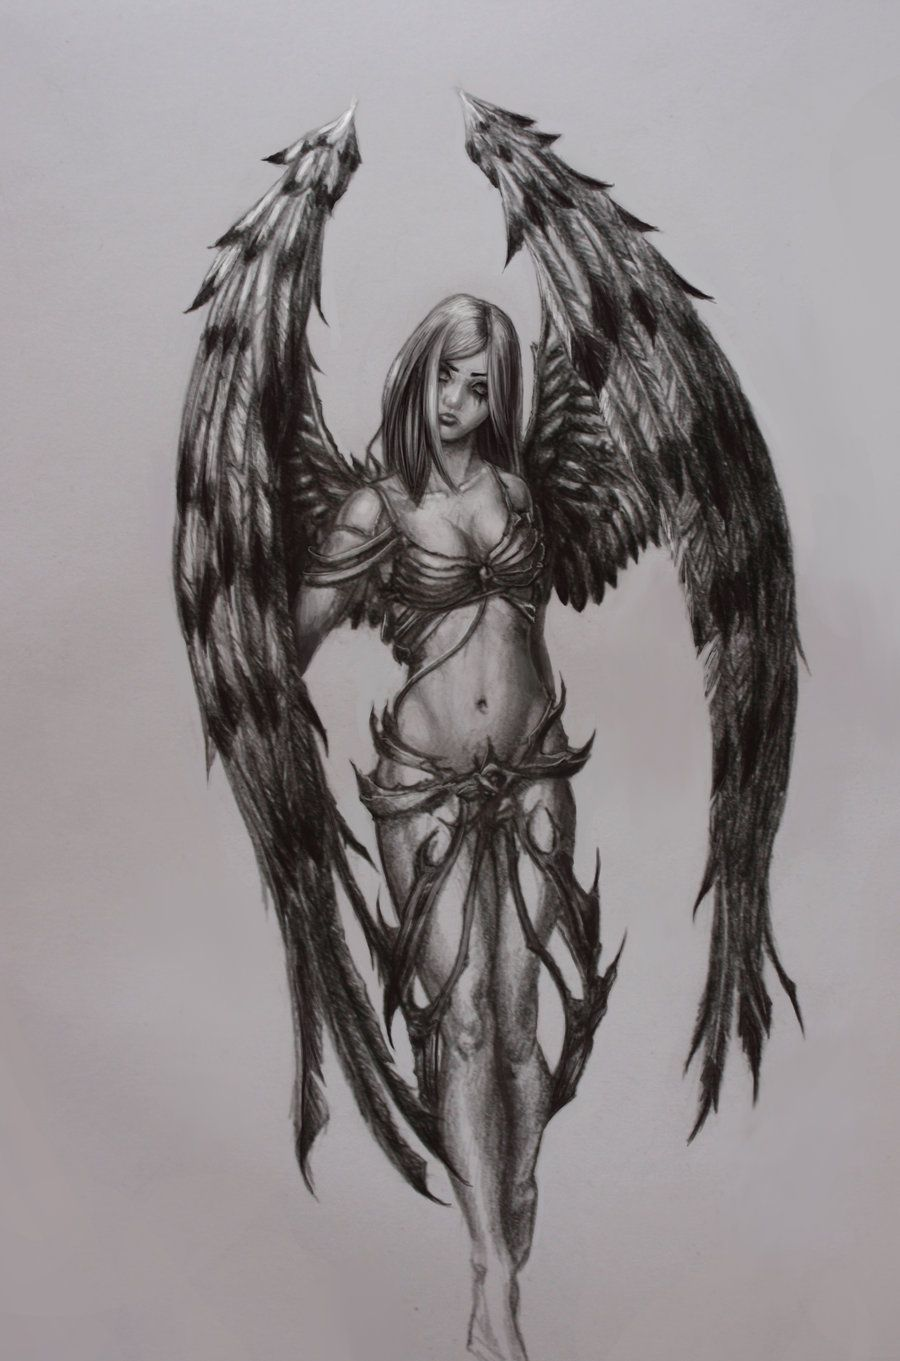 Pin by Katri H. on My odd Inspirations | Pinterest ... Angel Drawings In Pencil